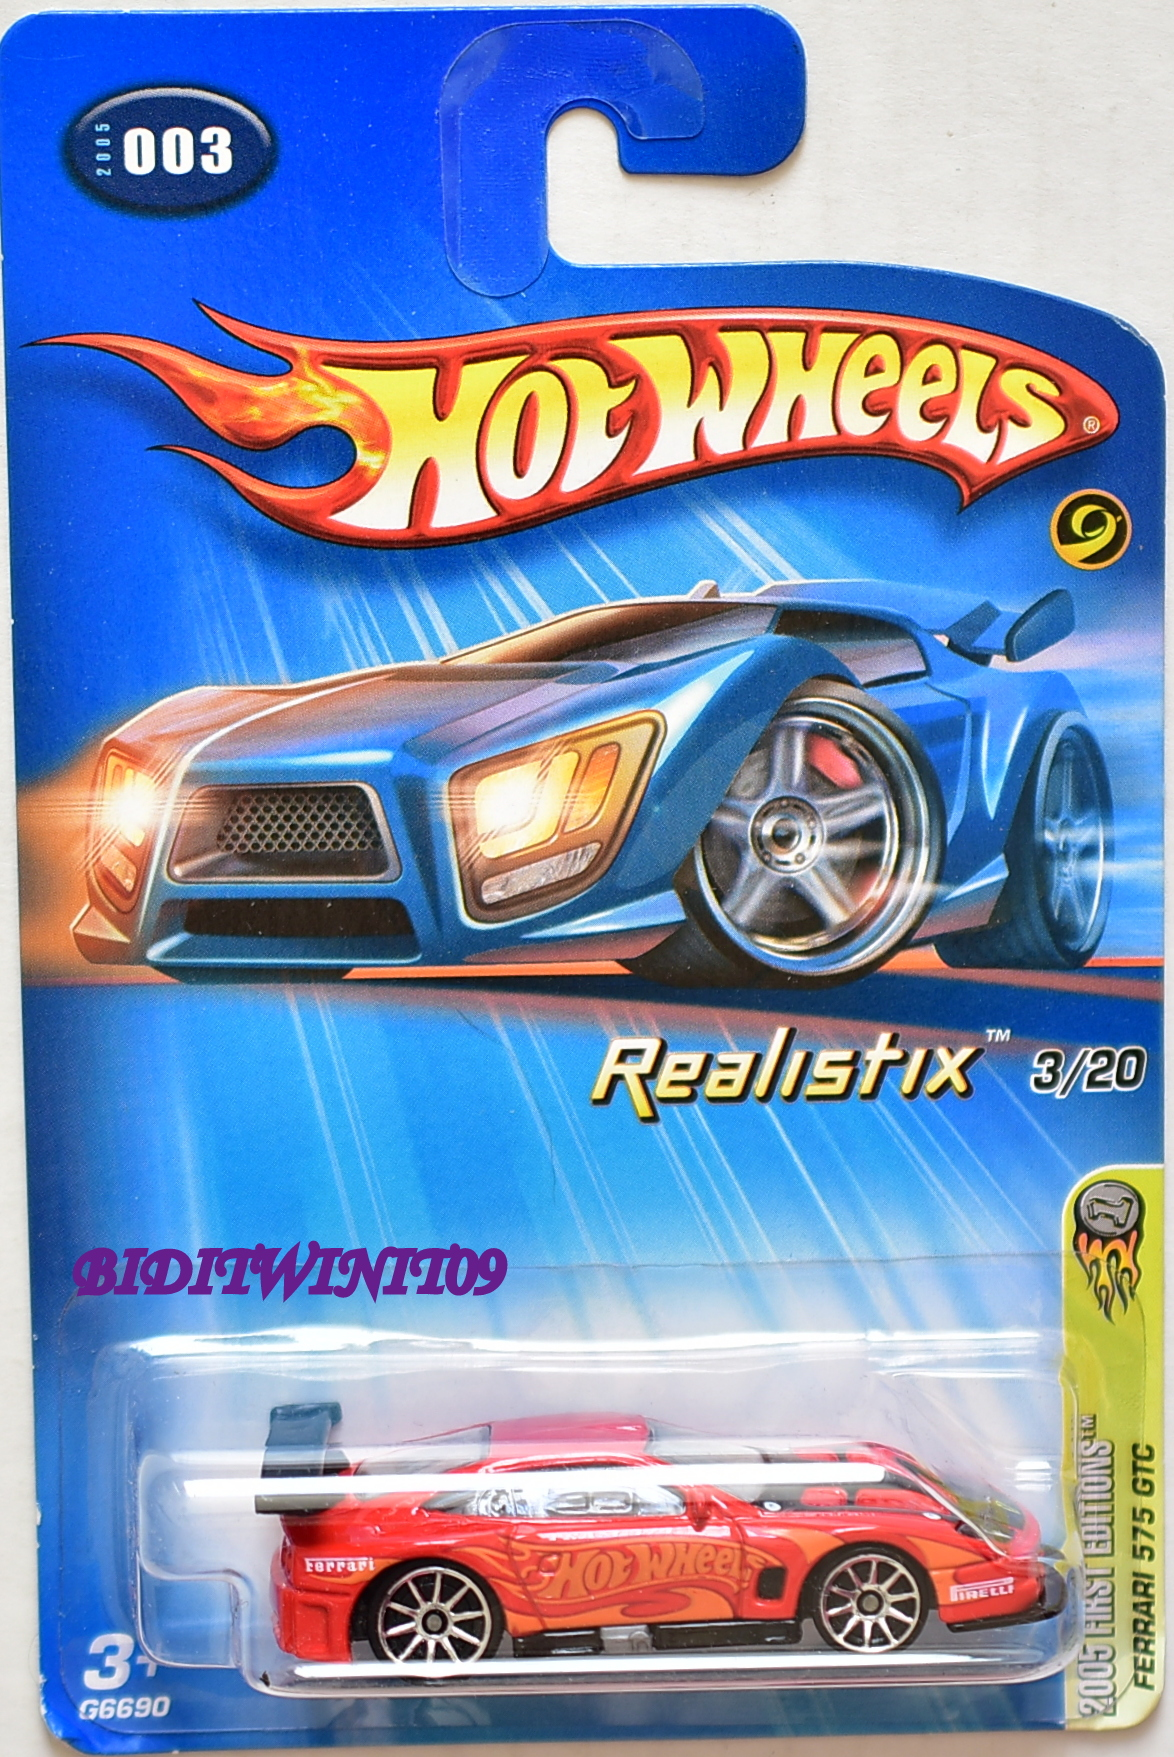 HOT WHEELS 2005 FIRST EDITIONS - REALISTIX FERRARI 575 GTC #003 W/ 10 SP WHEELS